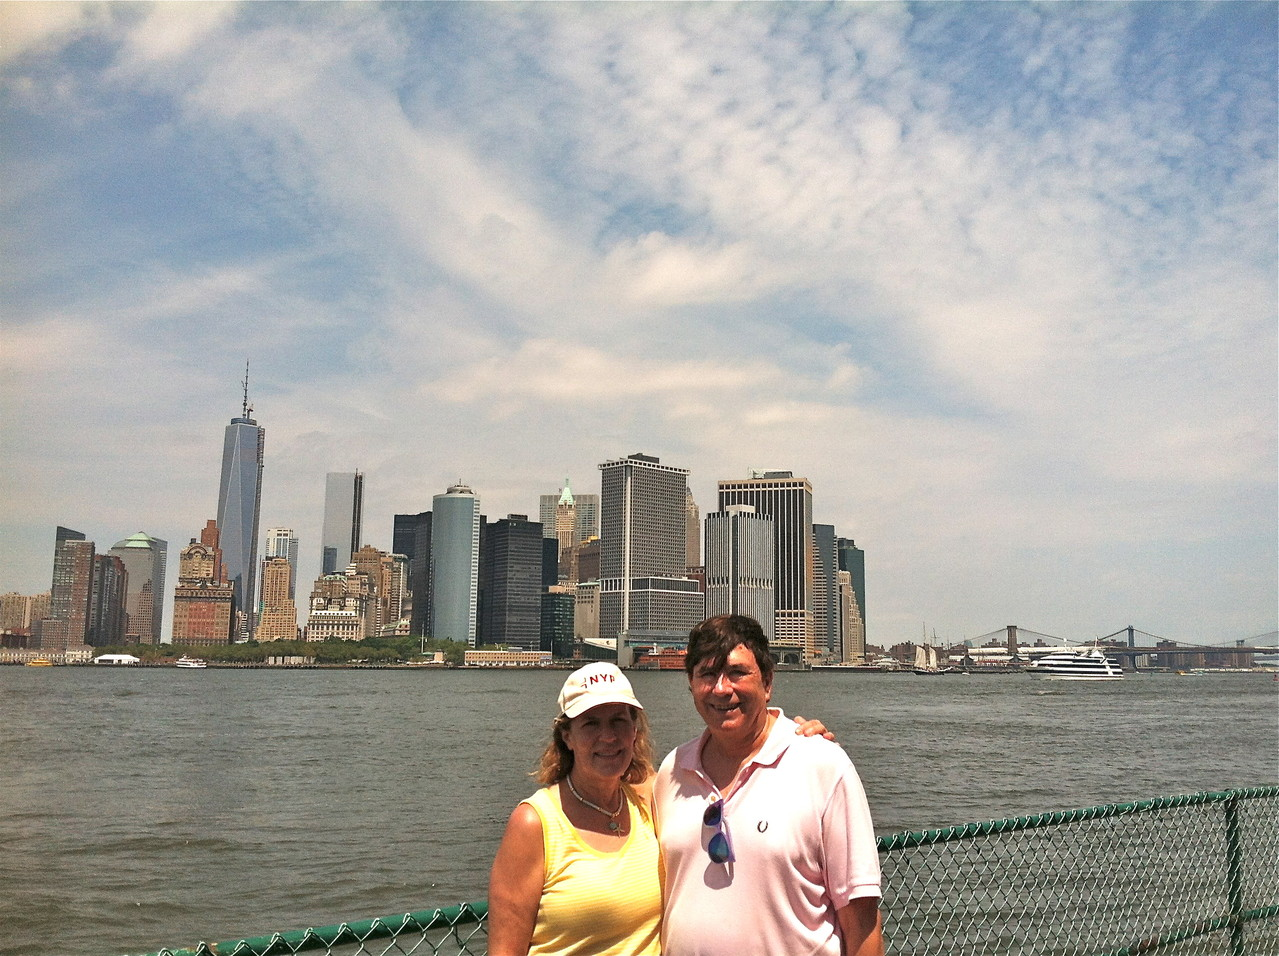 Lorraine & John, 90 degrees, July, 2013, Governor's Island